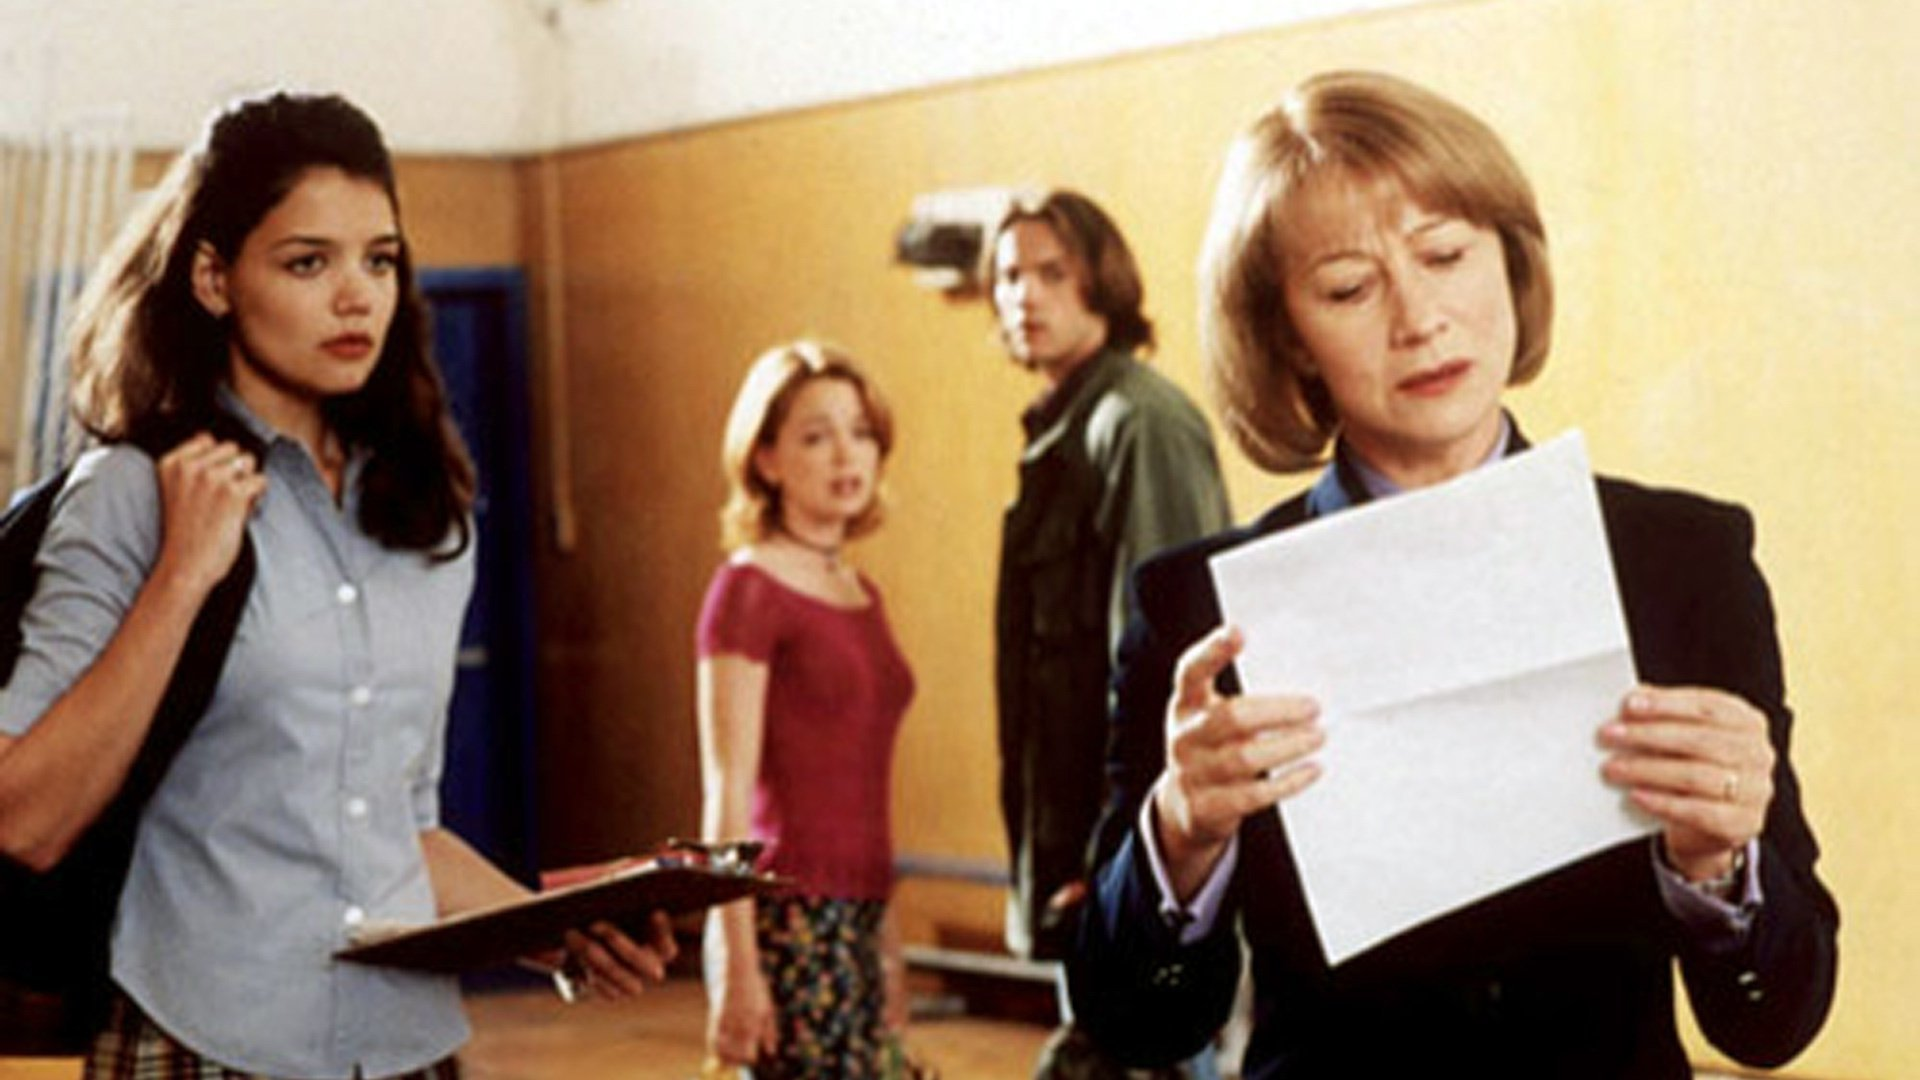 Katie Holmes looks on with friends Marissa Coughlan and Barry Watson in the background as Mrs Tingle (Helen Mirren) reads her essay in Teaching Mrs. Tingle (1999)